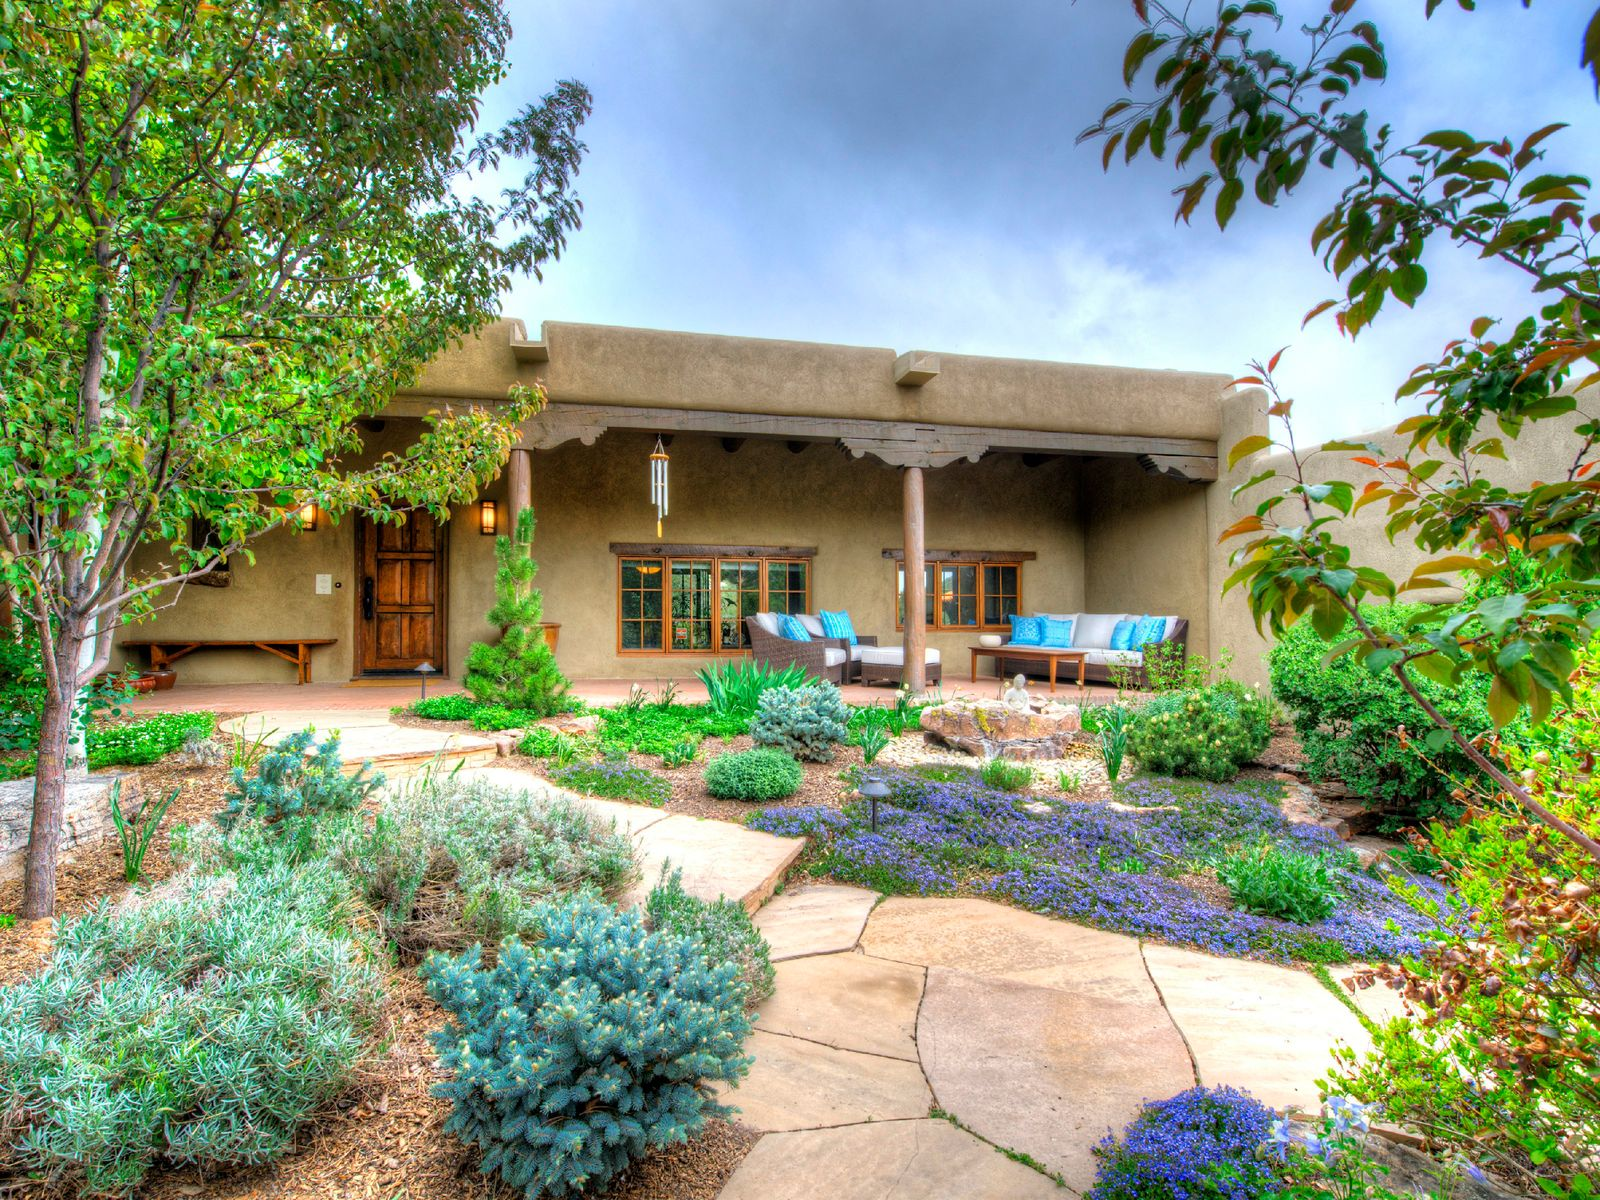 920 Paseo De Andres, Santa Fe NM Single Family Home - Santa Fe Real Estate